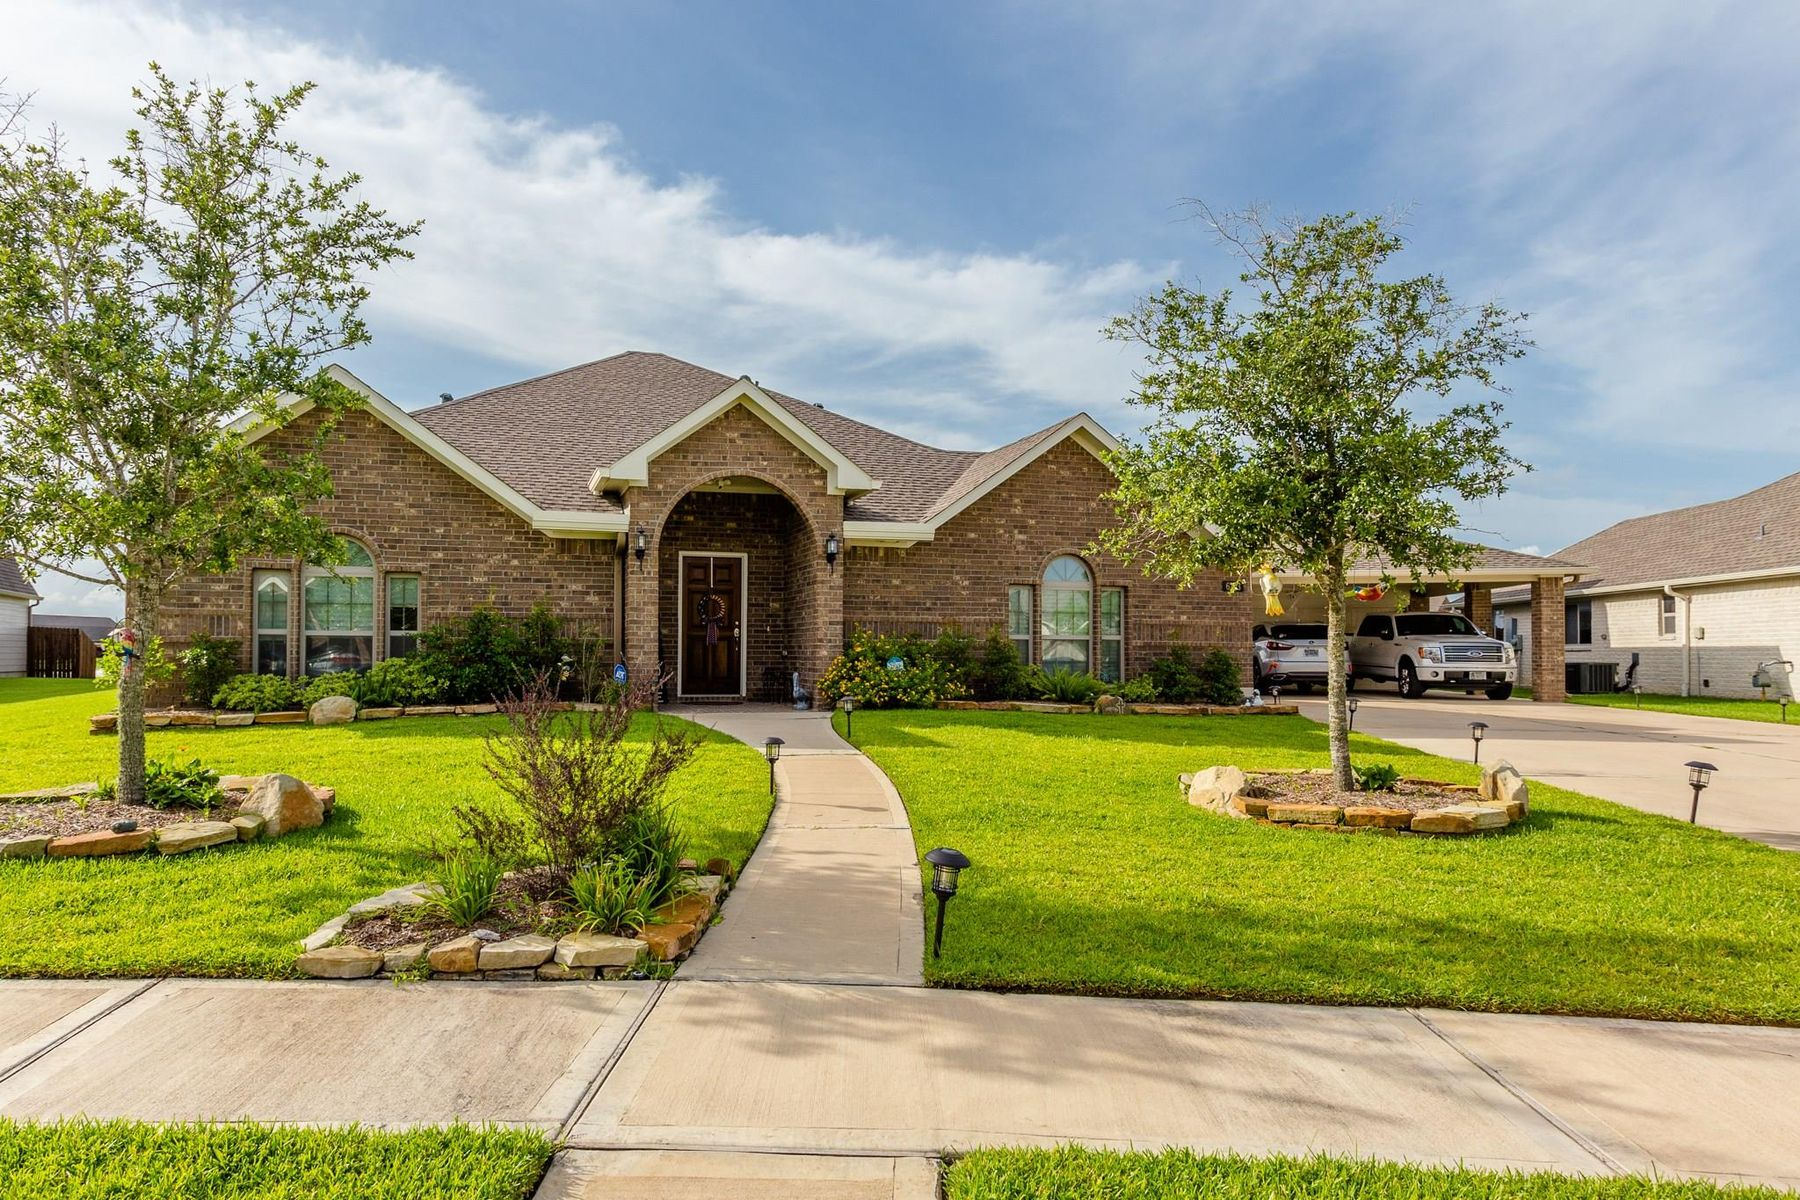 Single Family Homes for Sale at 6703 Hawkins Street Manvel, Texas 77578 United States